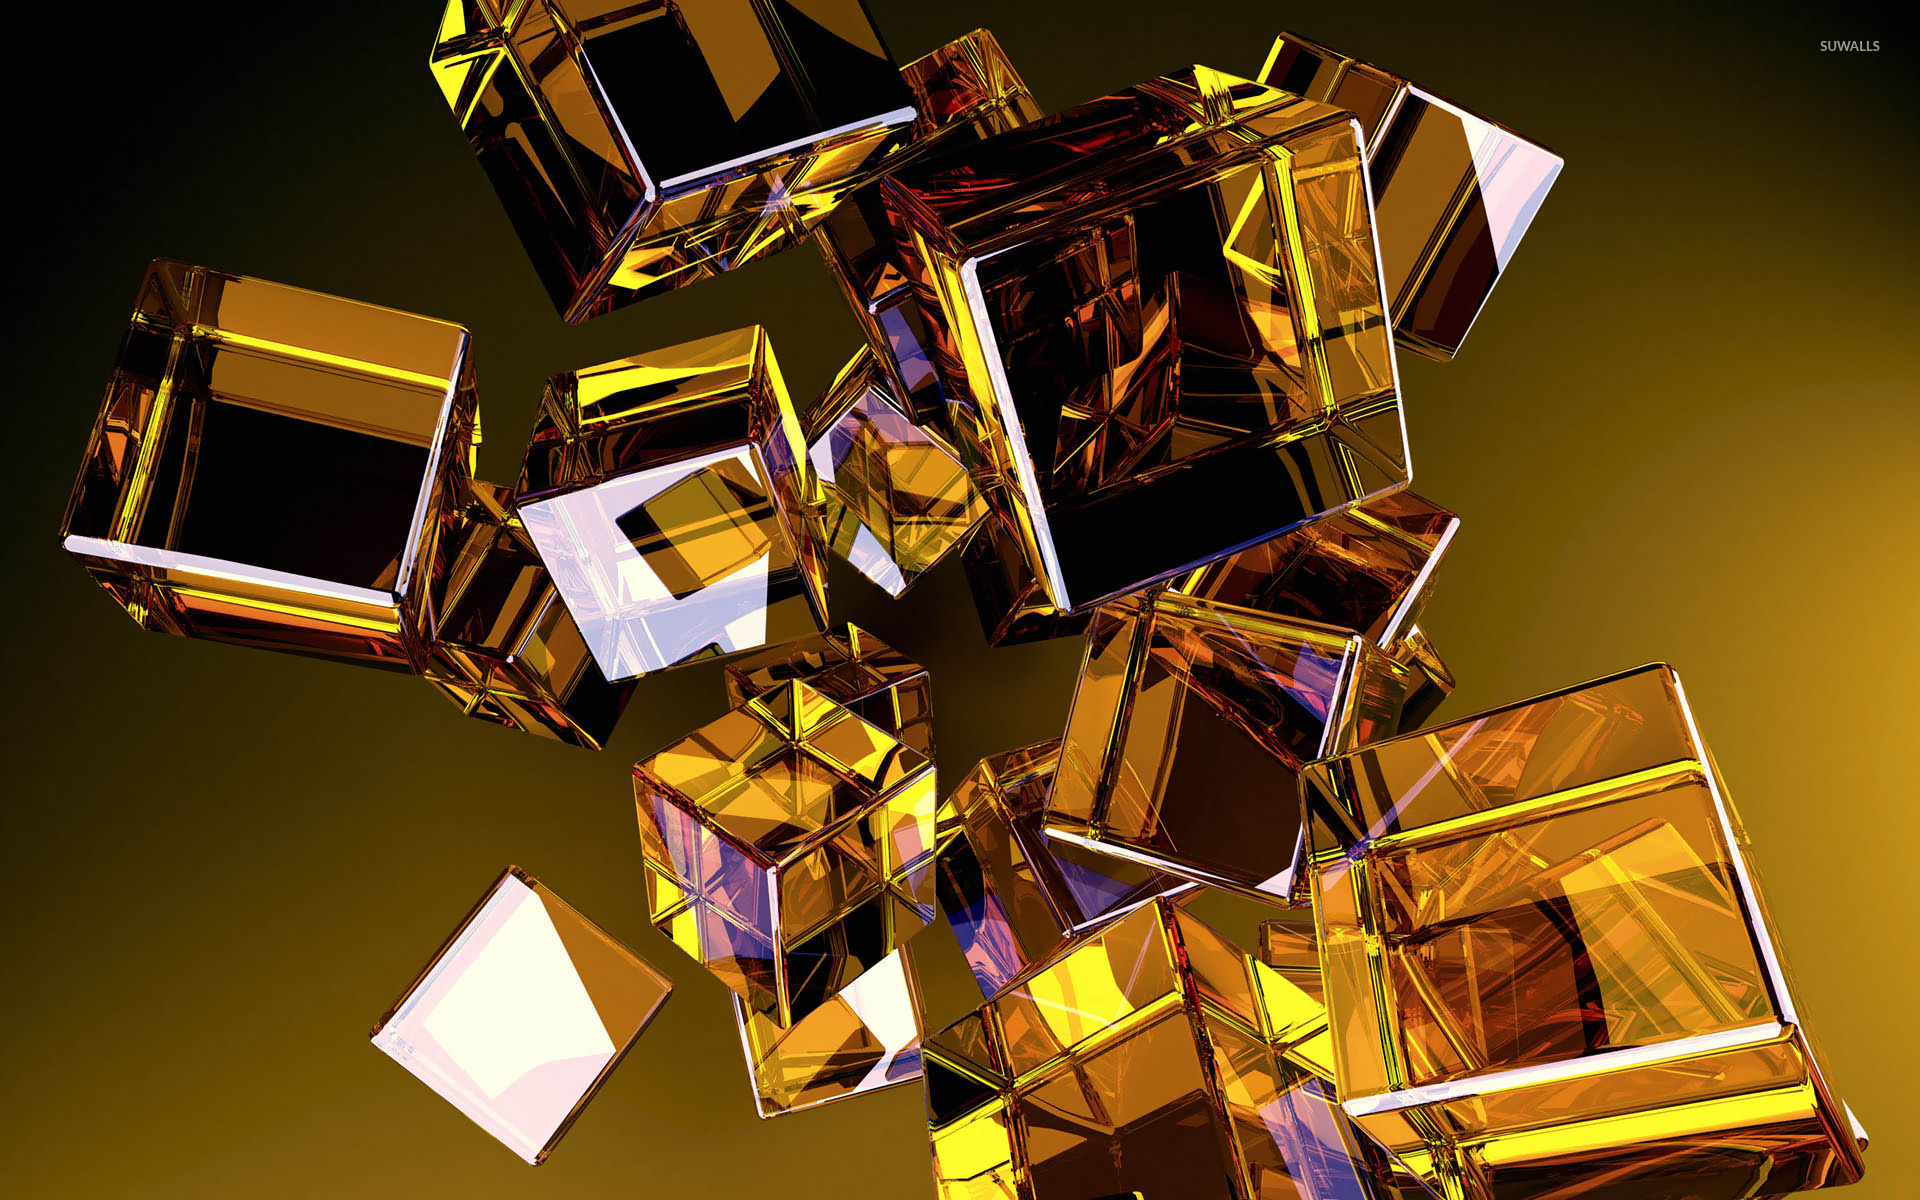 Glass cubes 4 wallpaper 3d wallpapers 11879 for Gold 3d wallpaper